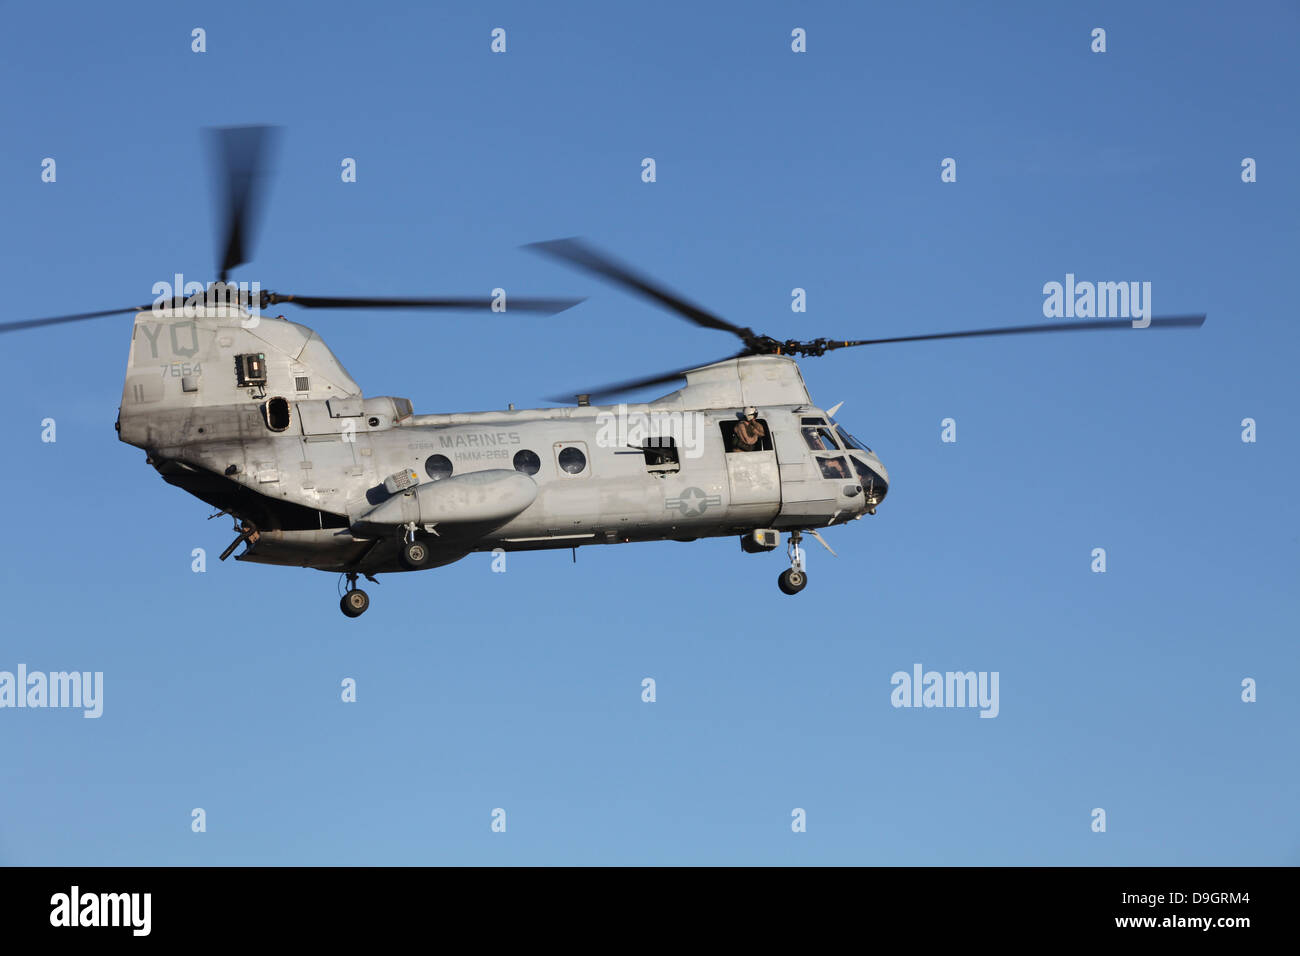 A U.S. Marine Corps CH-53 Sea Stallion helicopter. - Stock Image